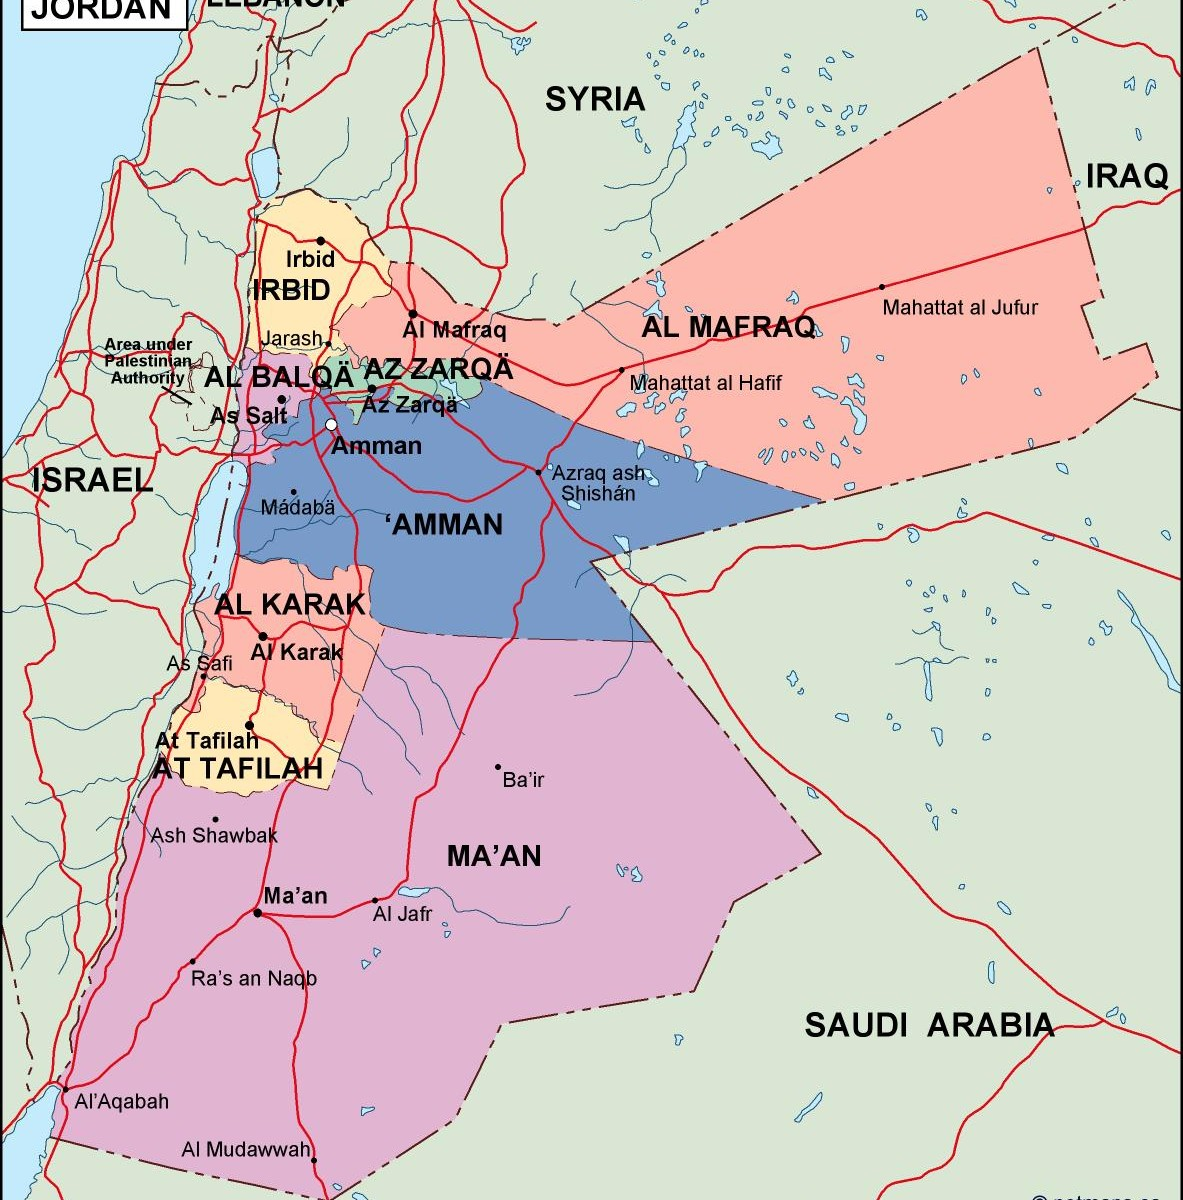 Jordan Political Map Eps Illustrator Map Our Cartographers Have - Detailed map of egypt and jordan